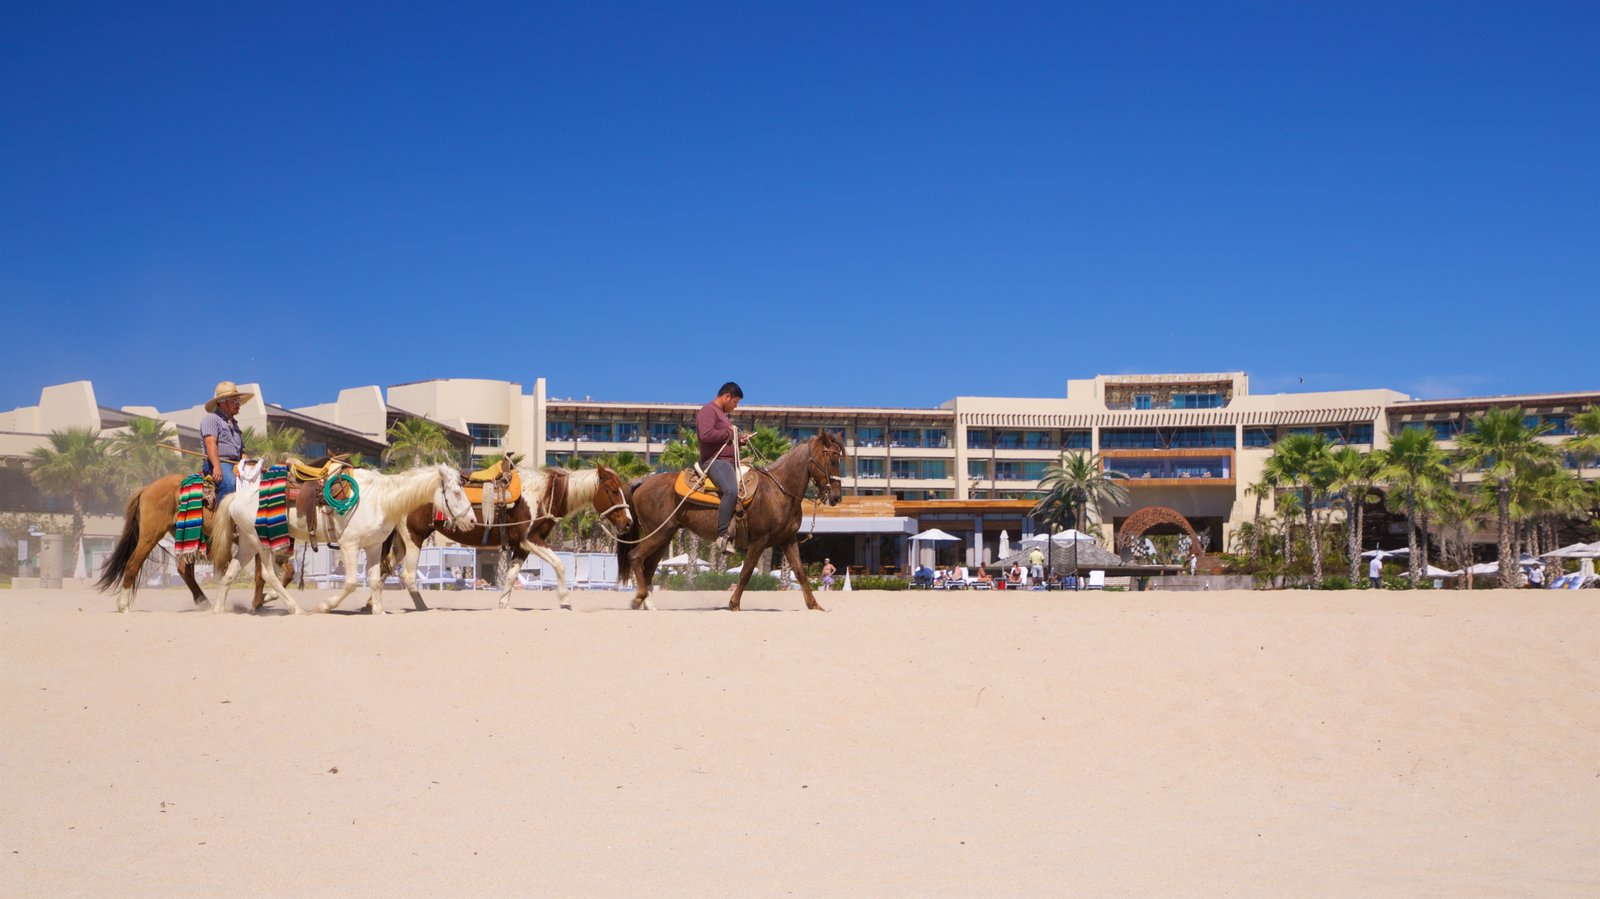 Playa Hotelera which includes a sandy beach, land animals and general coastal views